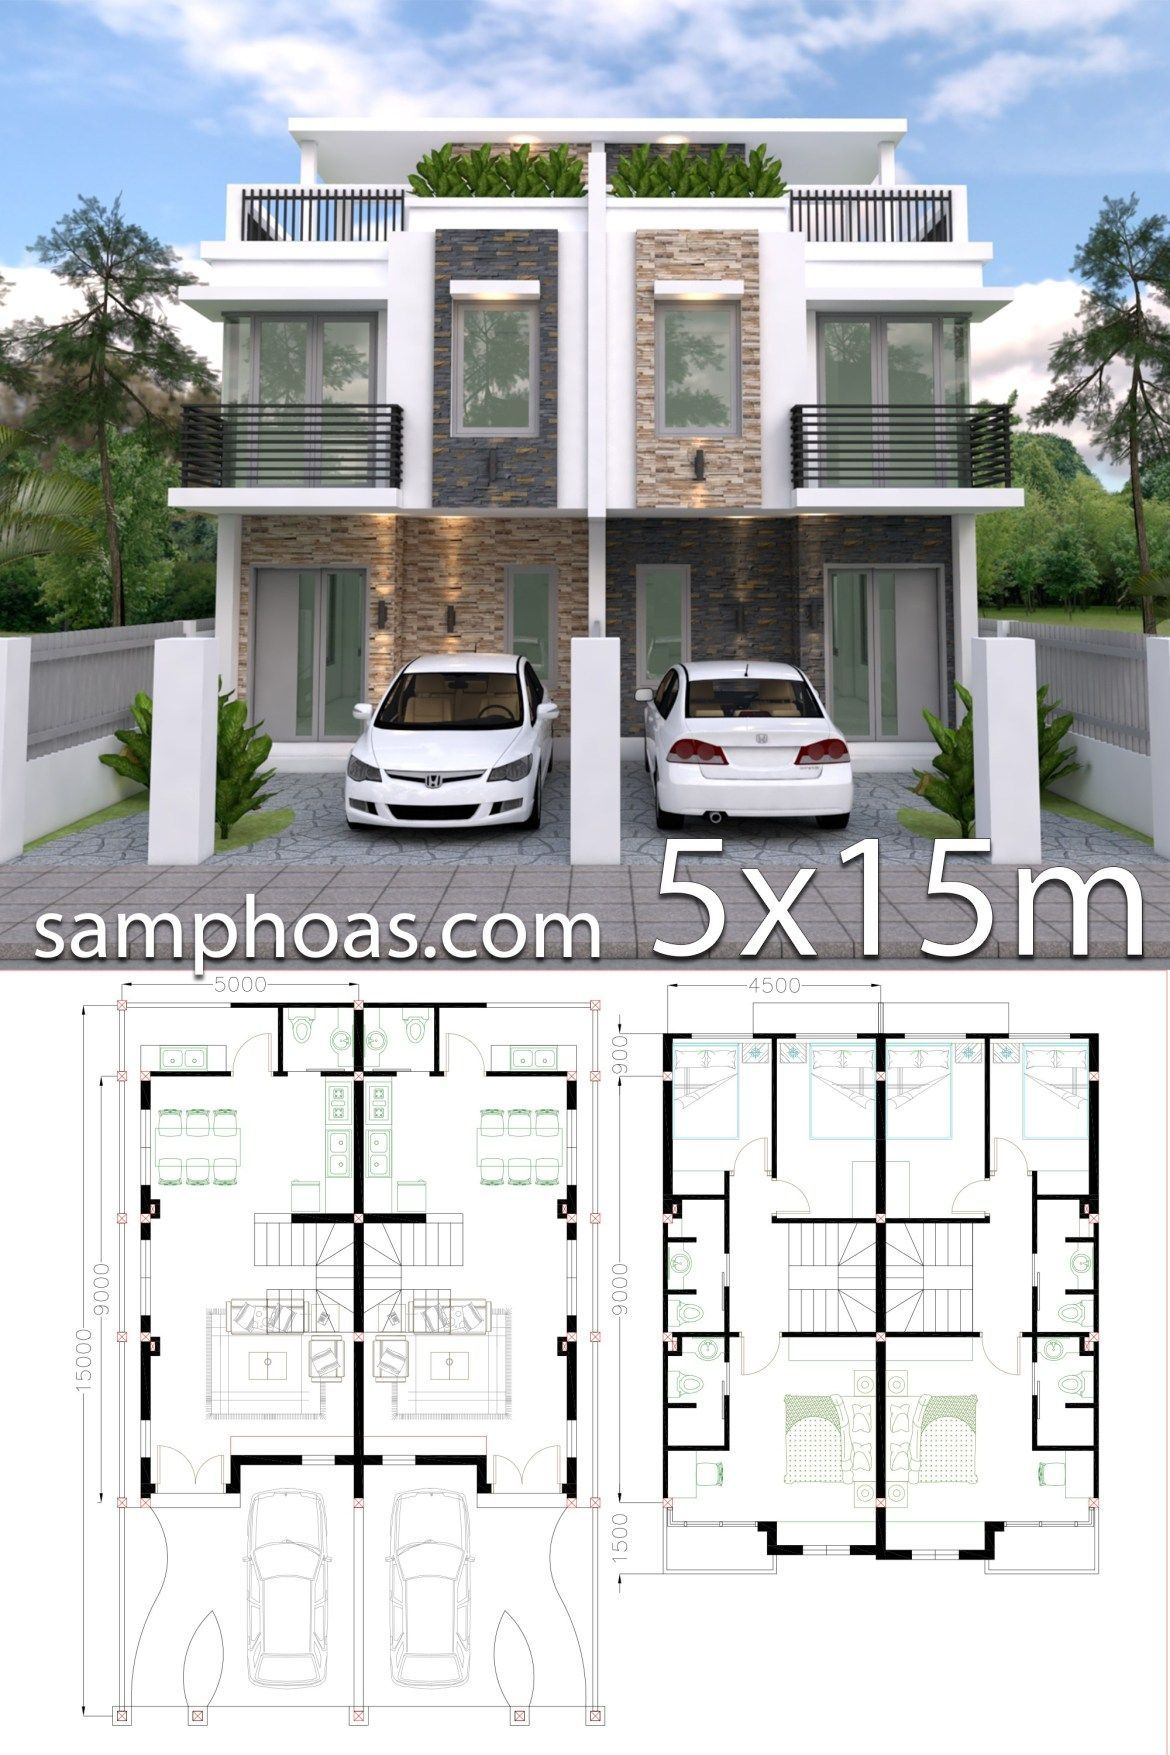 Home Design Plan 5x15m Duplex House with 3 Bedrooms front - SamPhoas  Plansearch in 2020 | House layout plans, Narrow house plans, Duplex house  design